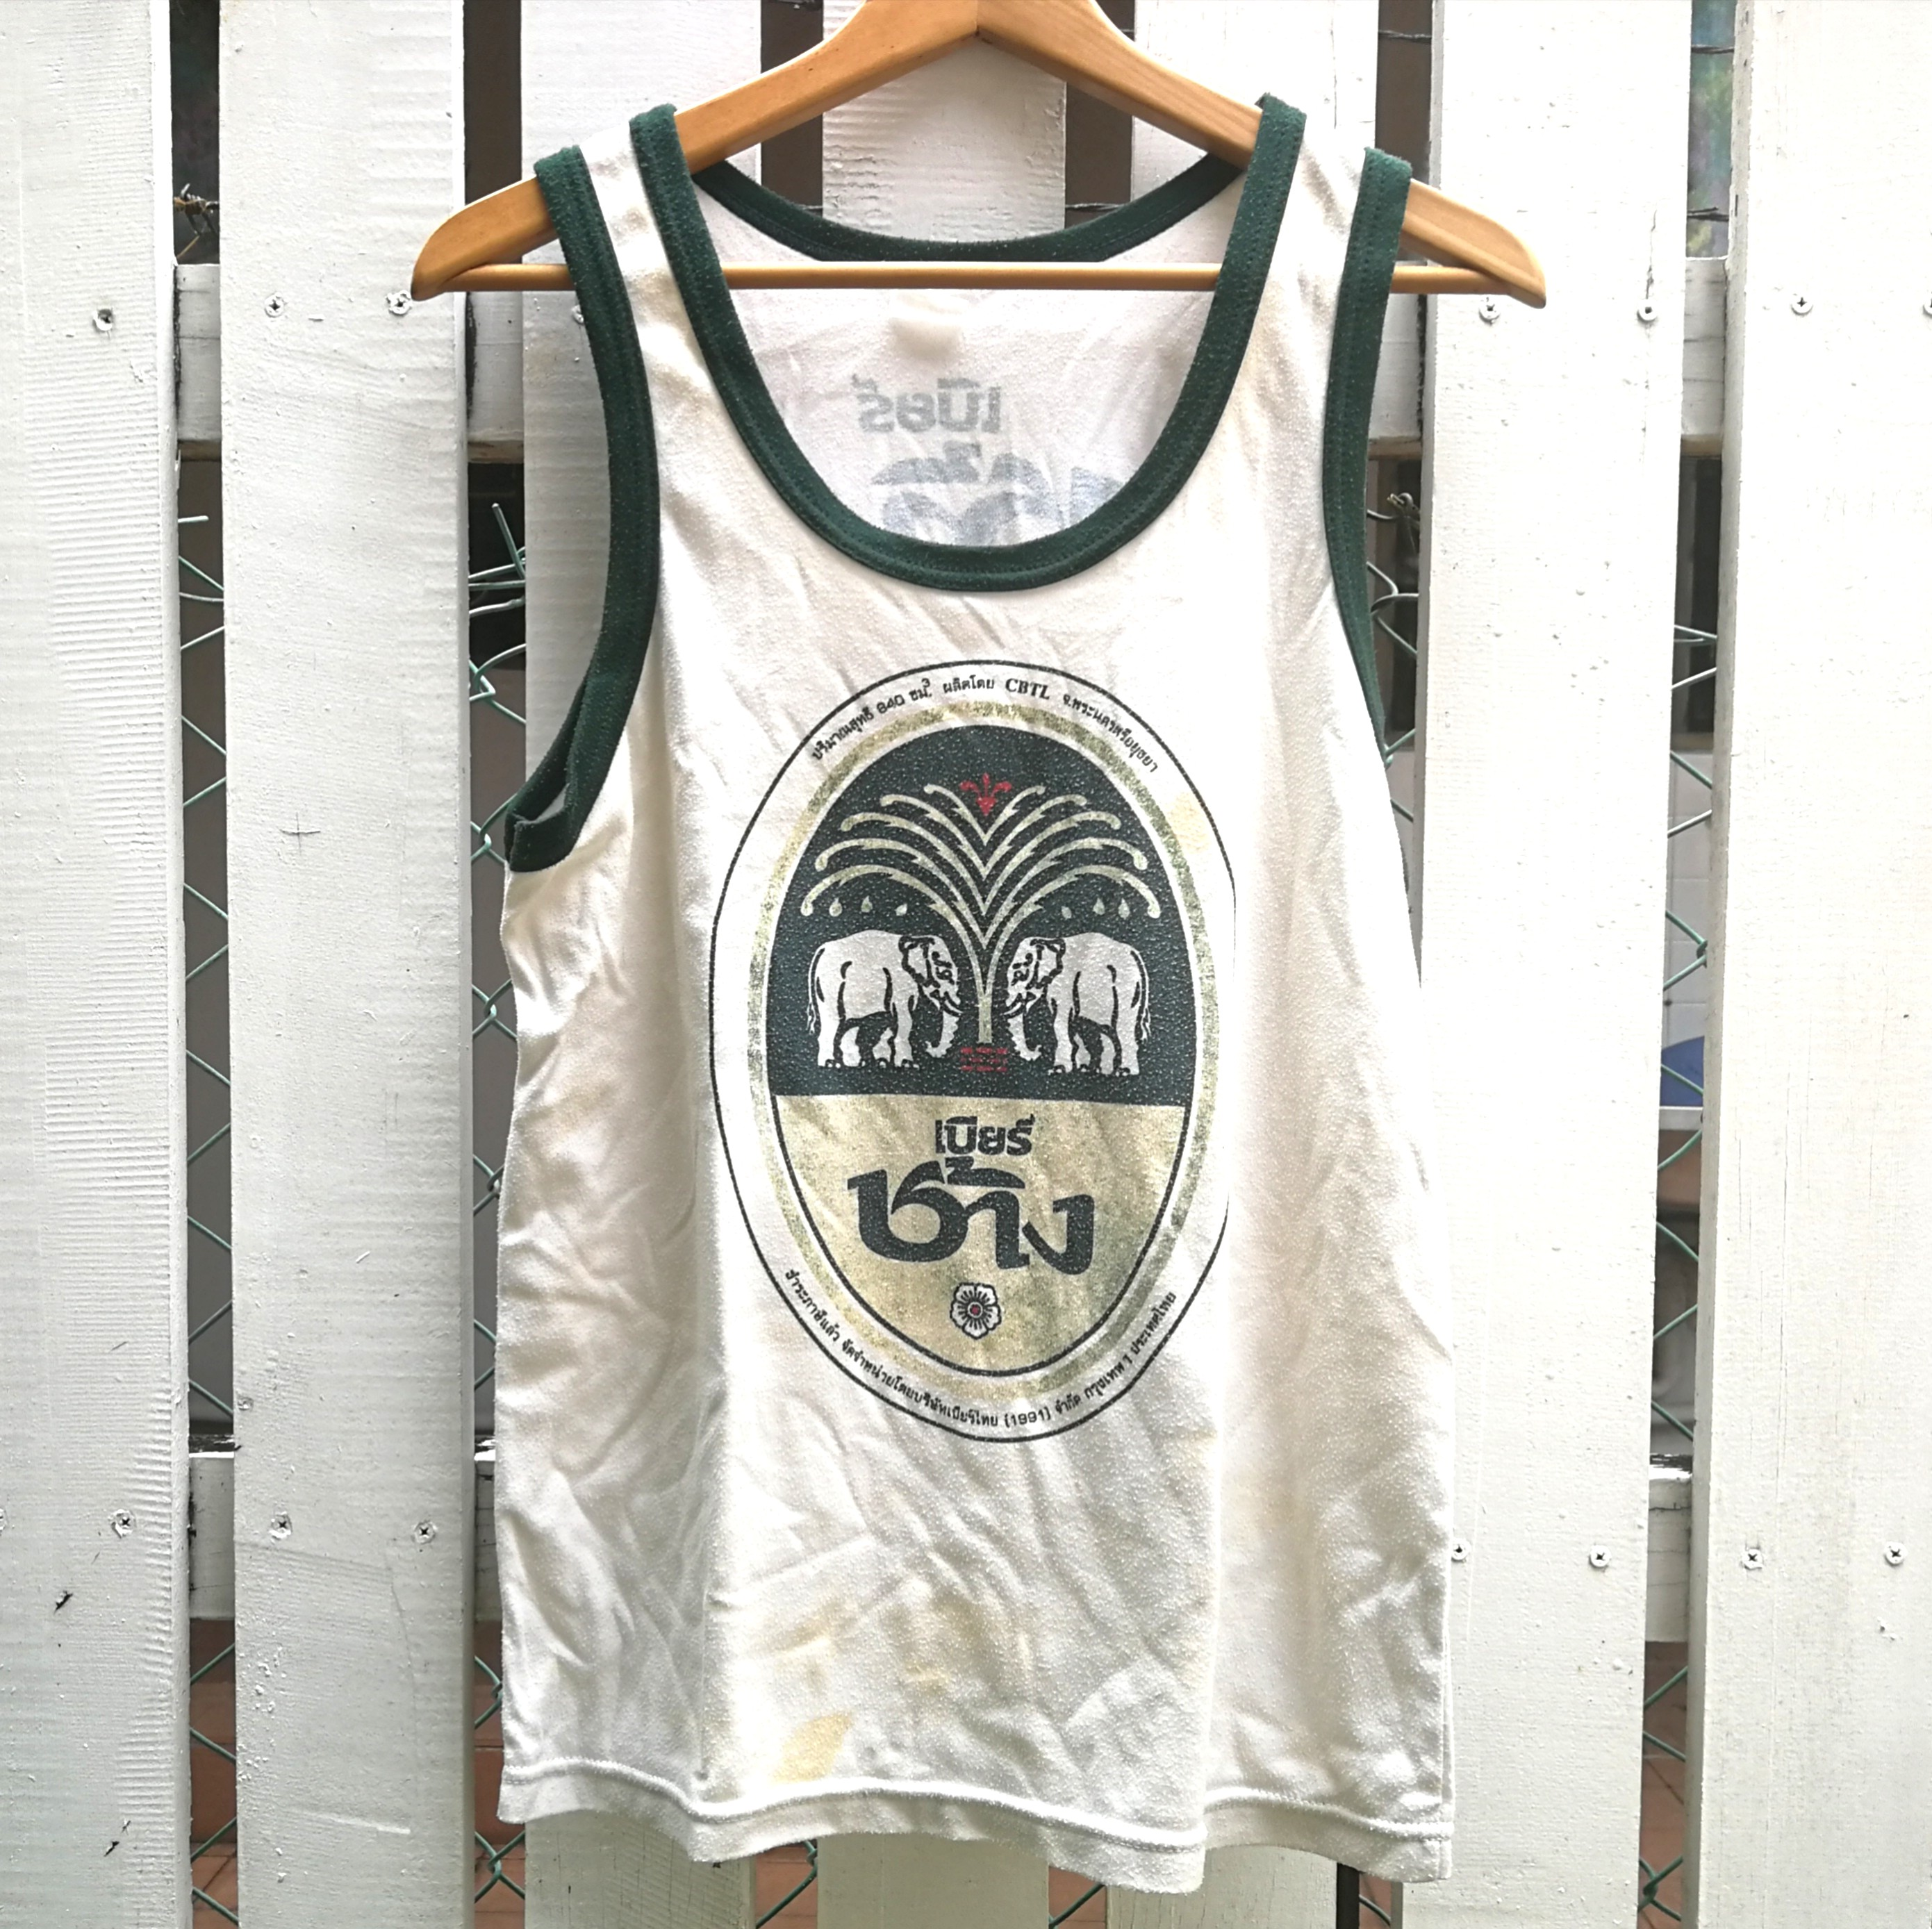 79d31552b058f White Chang Beer Muscle Tank Singlet, Men's Fashion, Clothes, Tops on  Carousell